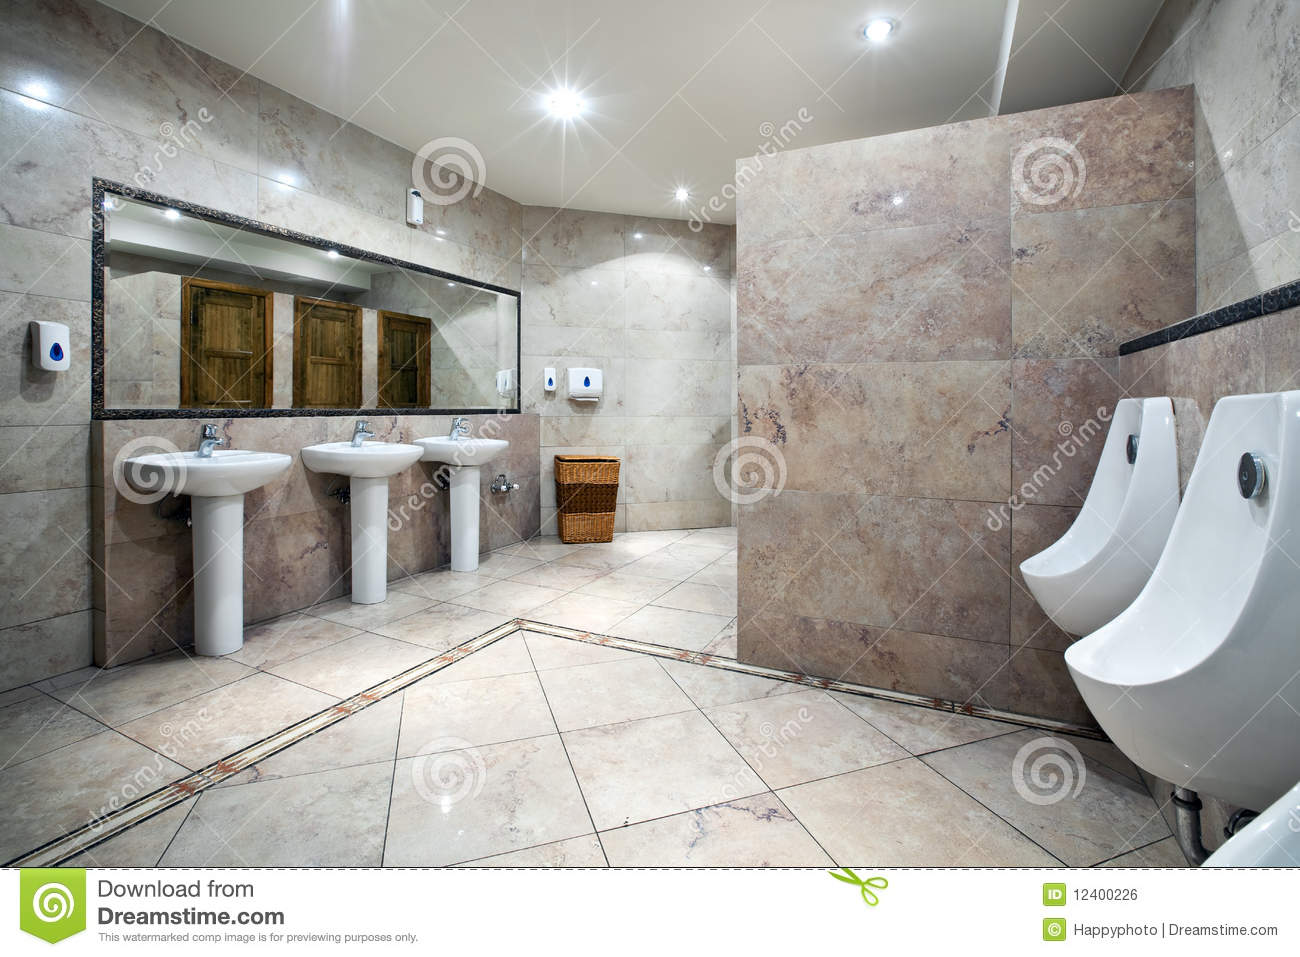 Public Restroom Interior Royalty Free Stock Image Image